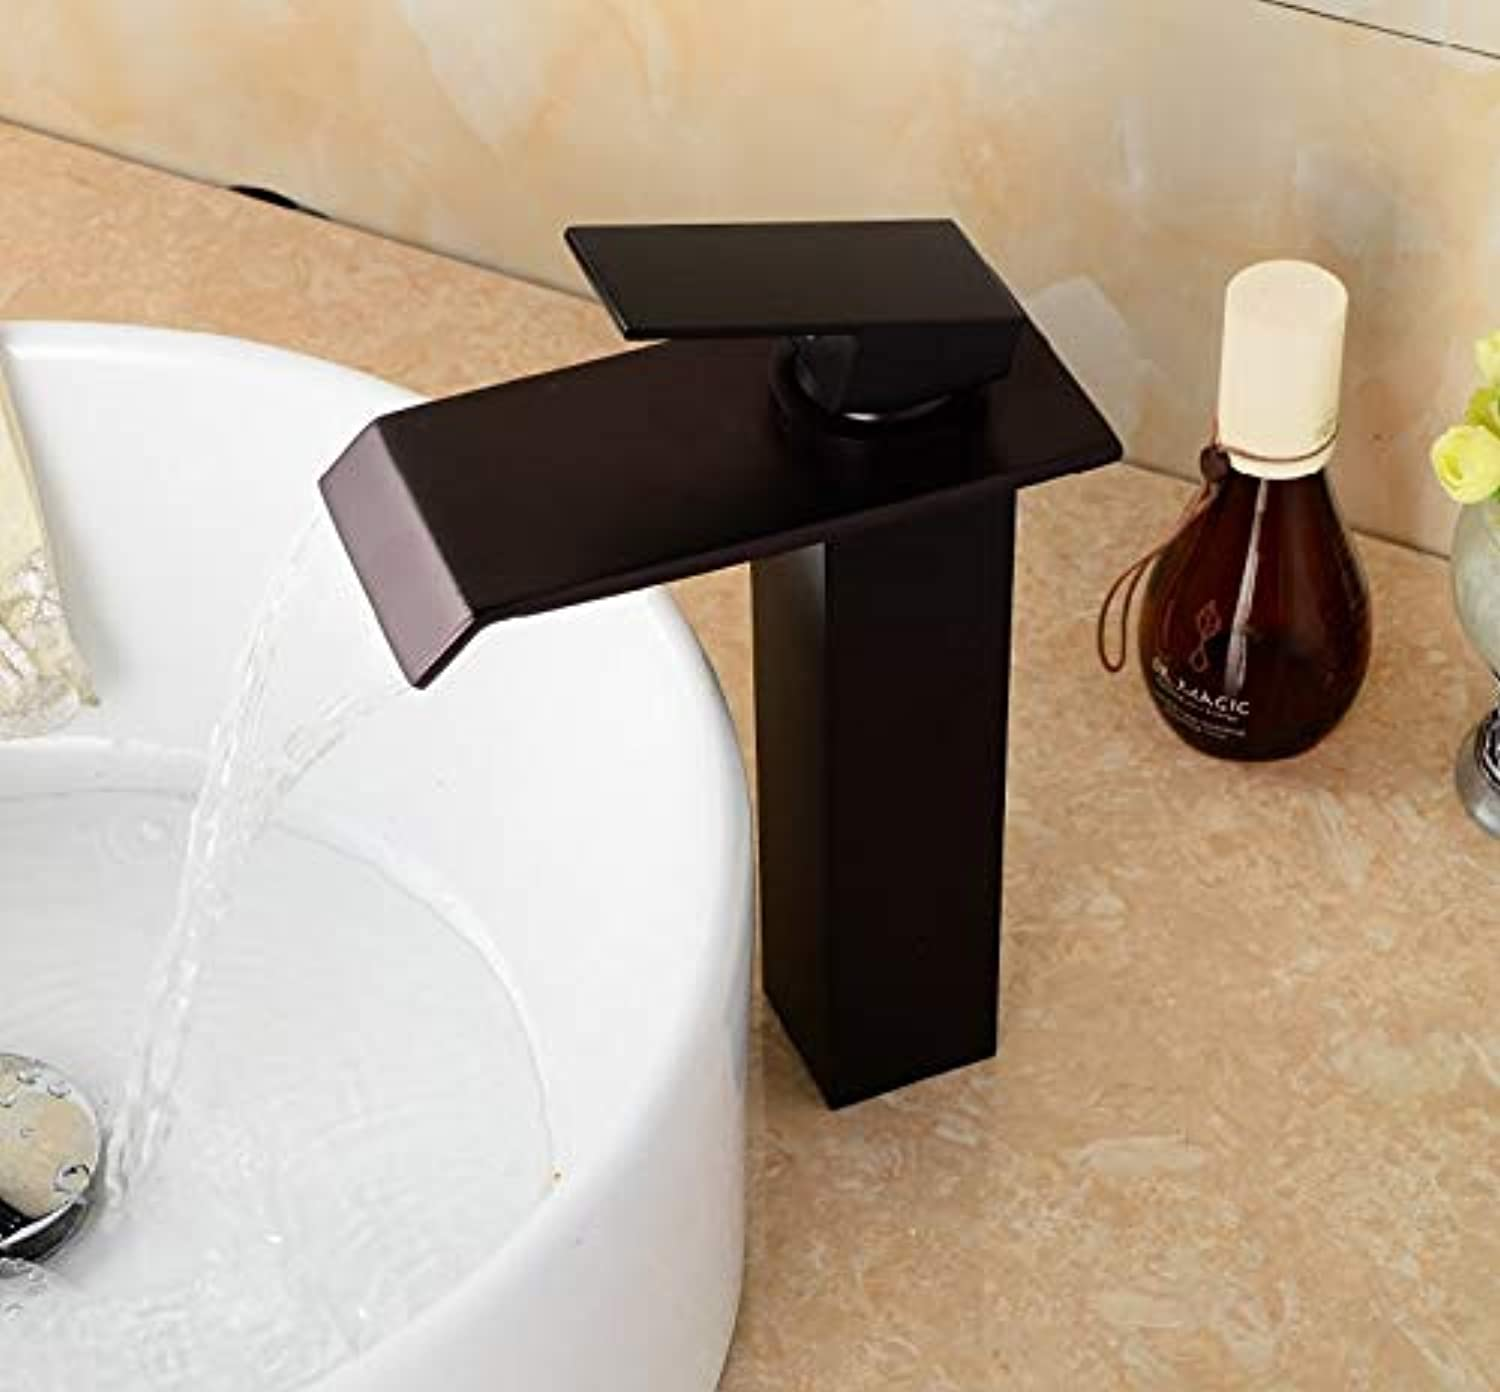 Oil Rubbing Bronze Bathroom Faucet, High Square Black Basin Faucet, Single Pole Single Hole Waterfall Faucet